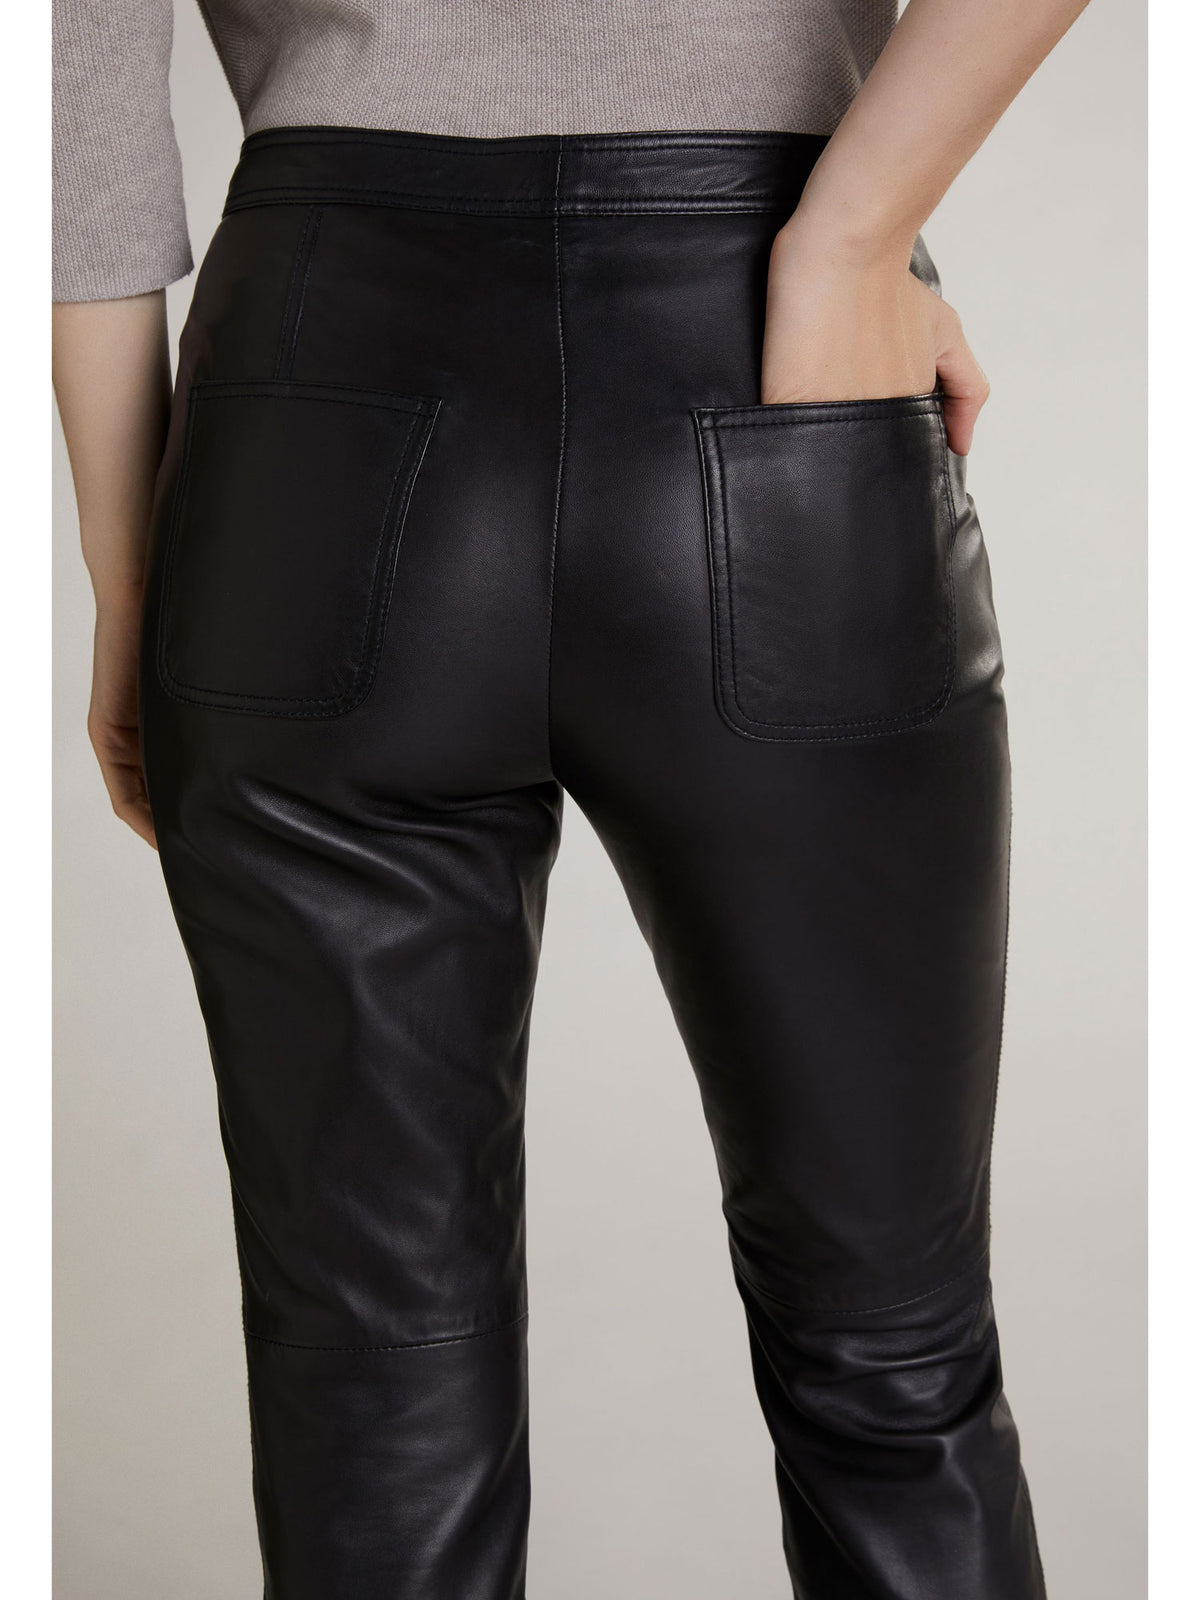 Oui Straight Leather Trousers